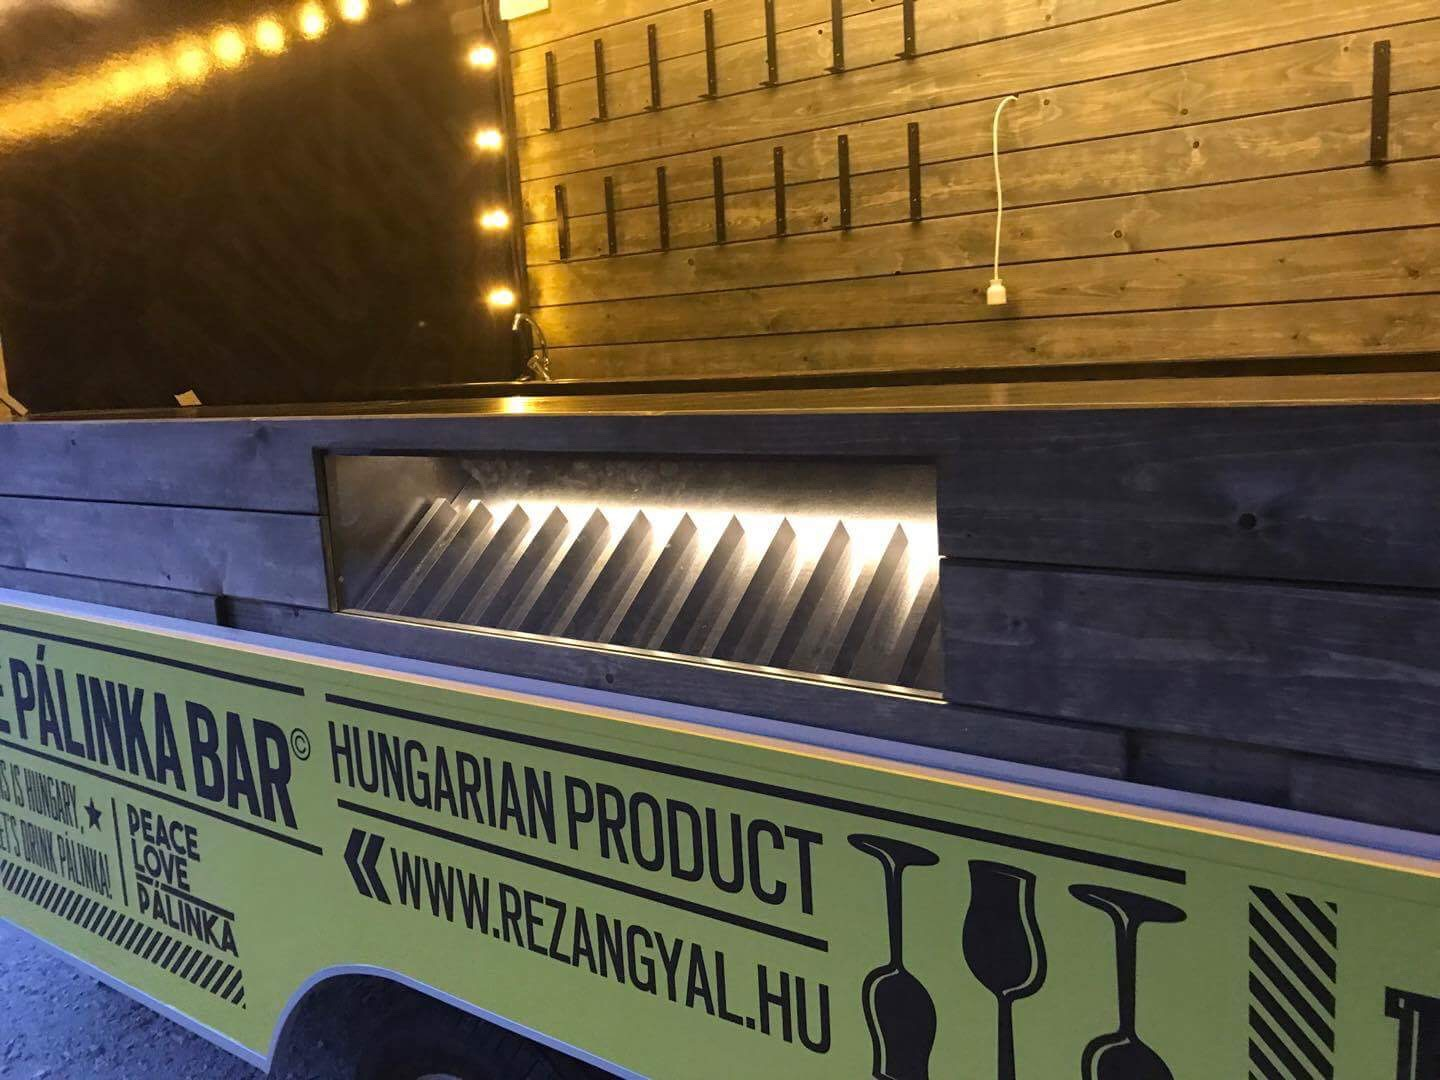 HEYTHERE kreatívügynökség, The Pálinka Bar, foodtruck design, Rézangyal pálinka